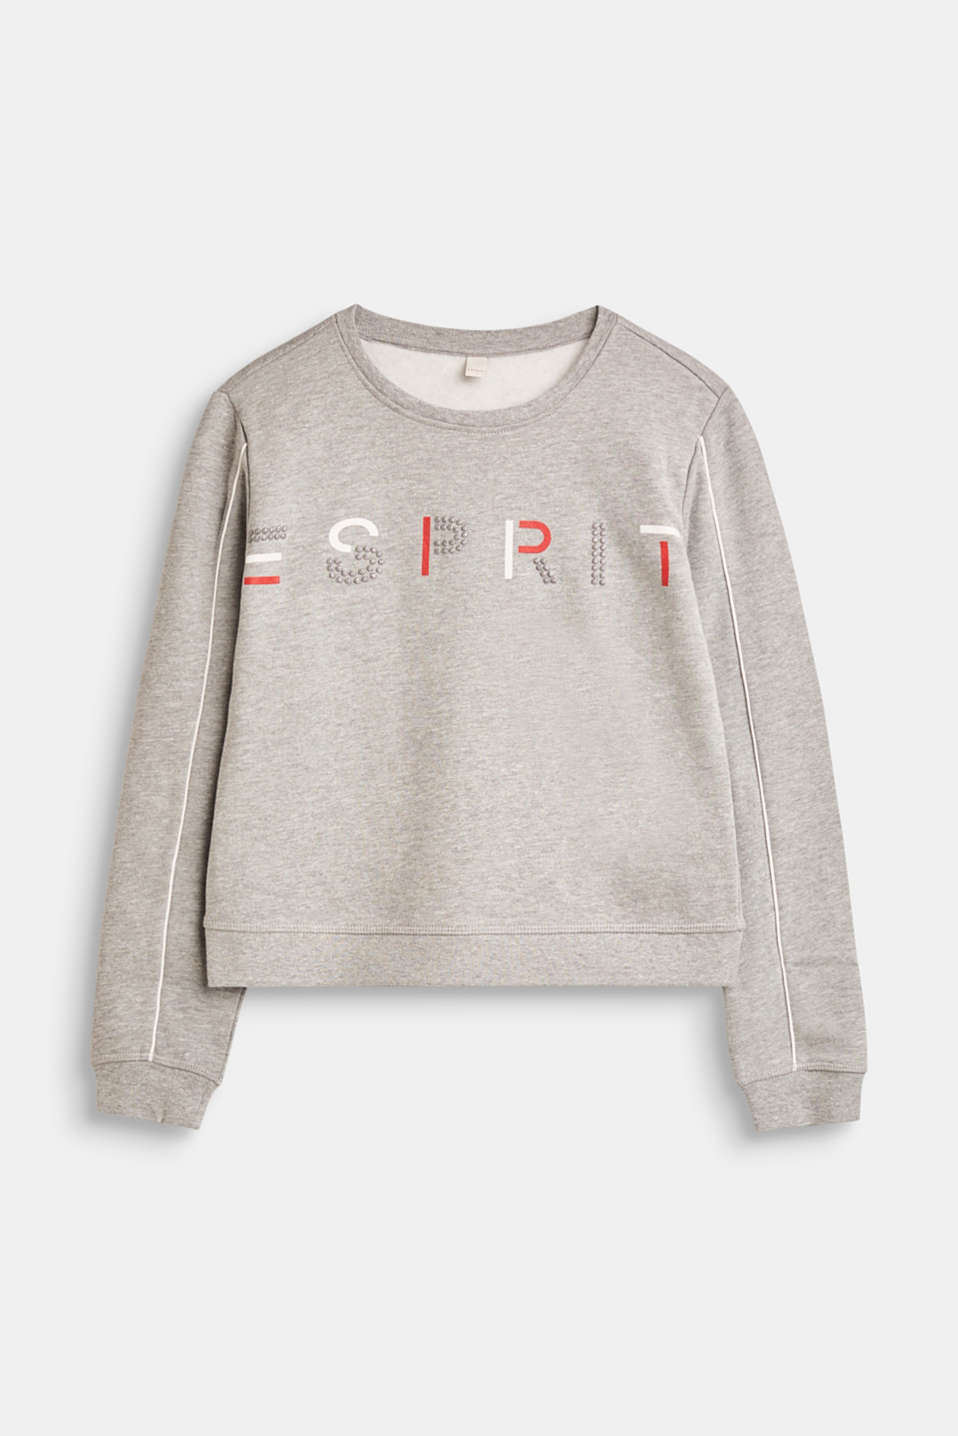 Esprit - Shiny print sweatshirt, 100% cotton